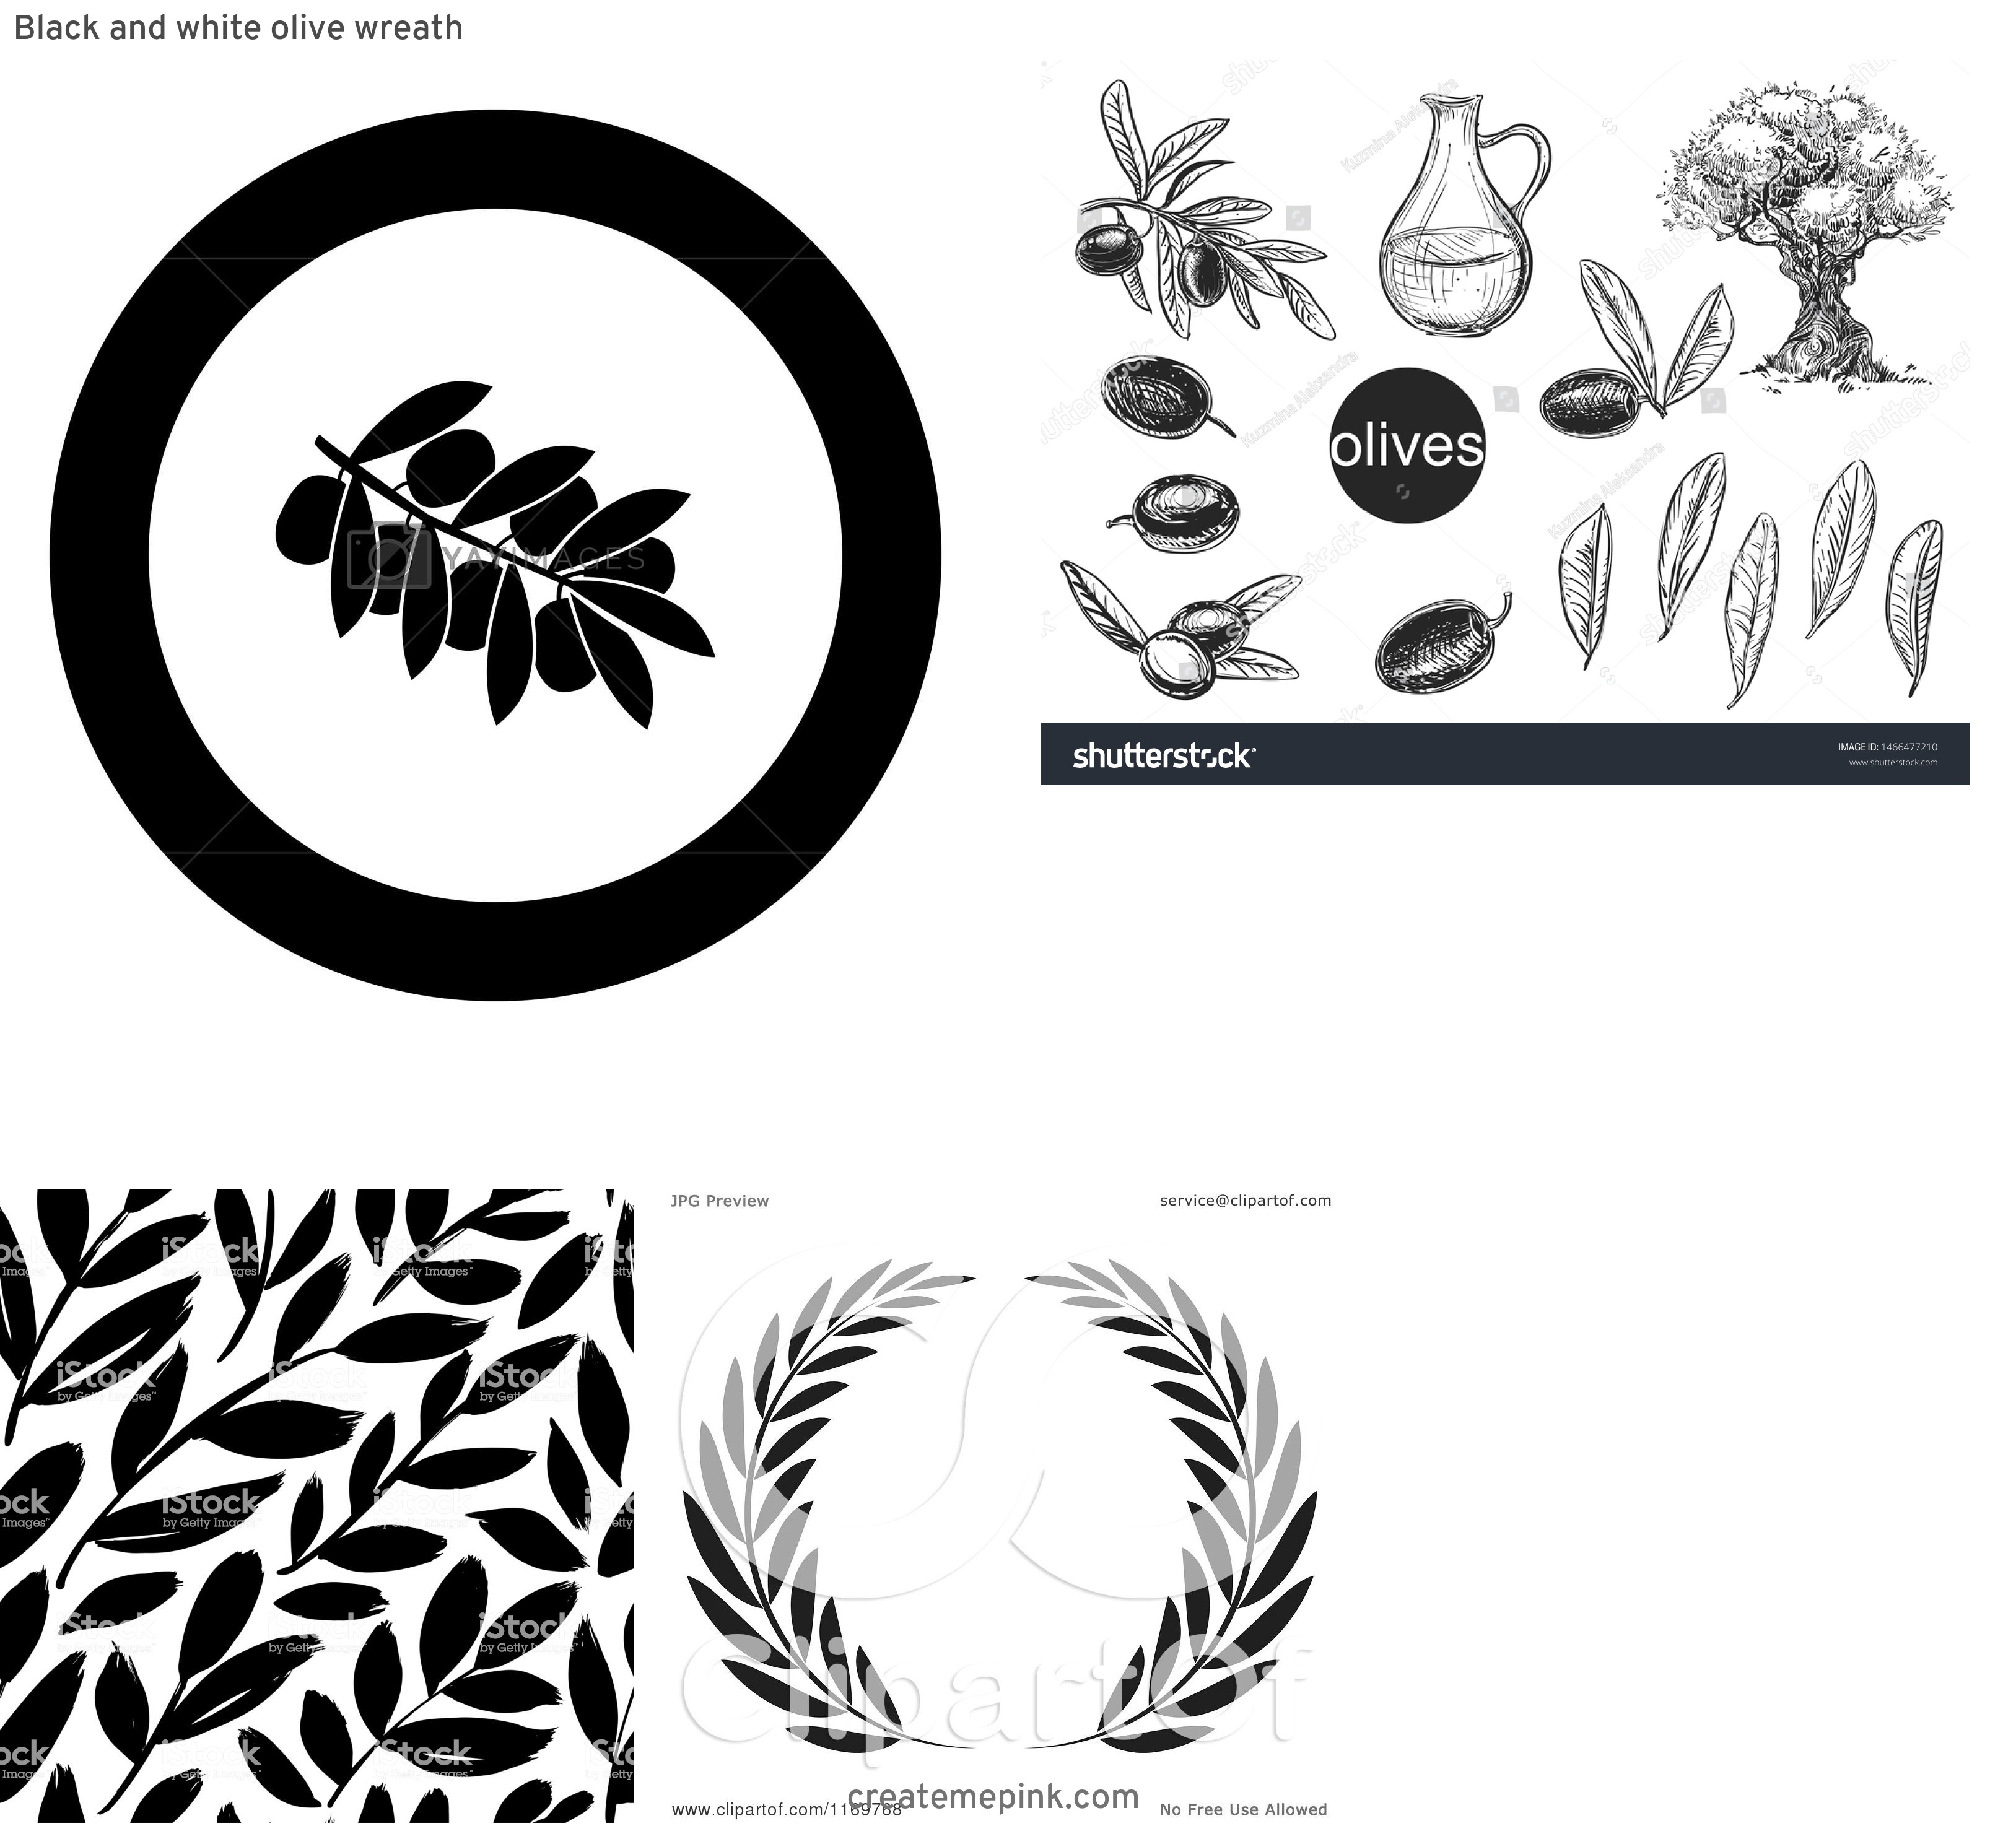 Olive Black And White Vector Leaves: Black And White Olive Wreath